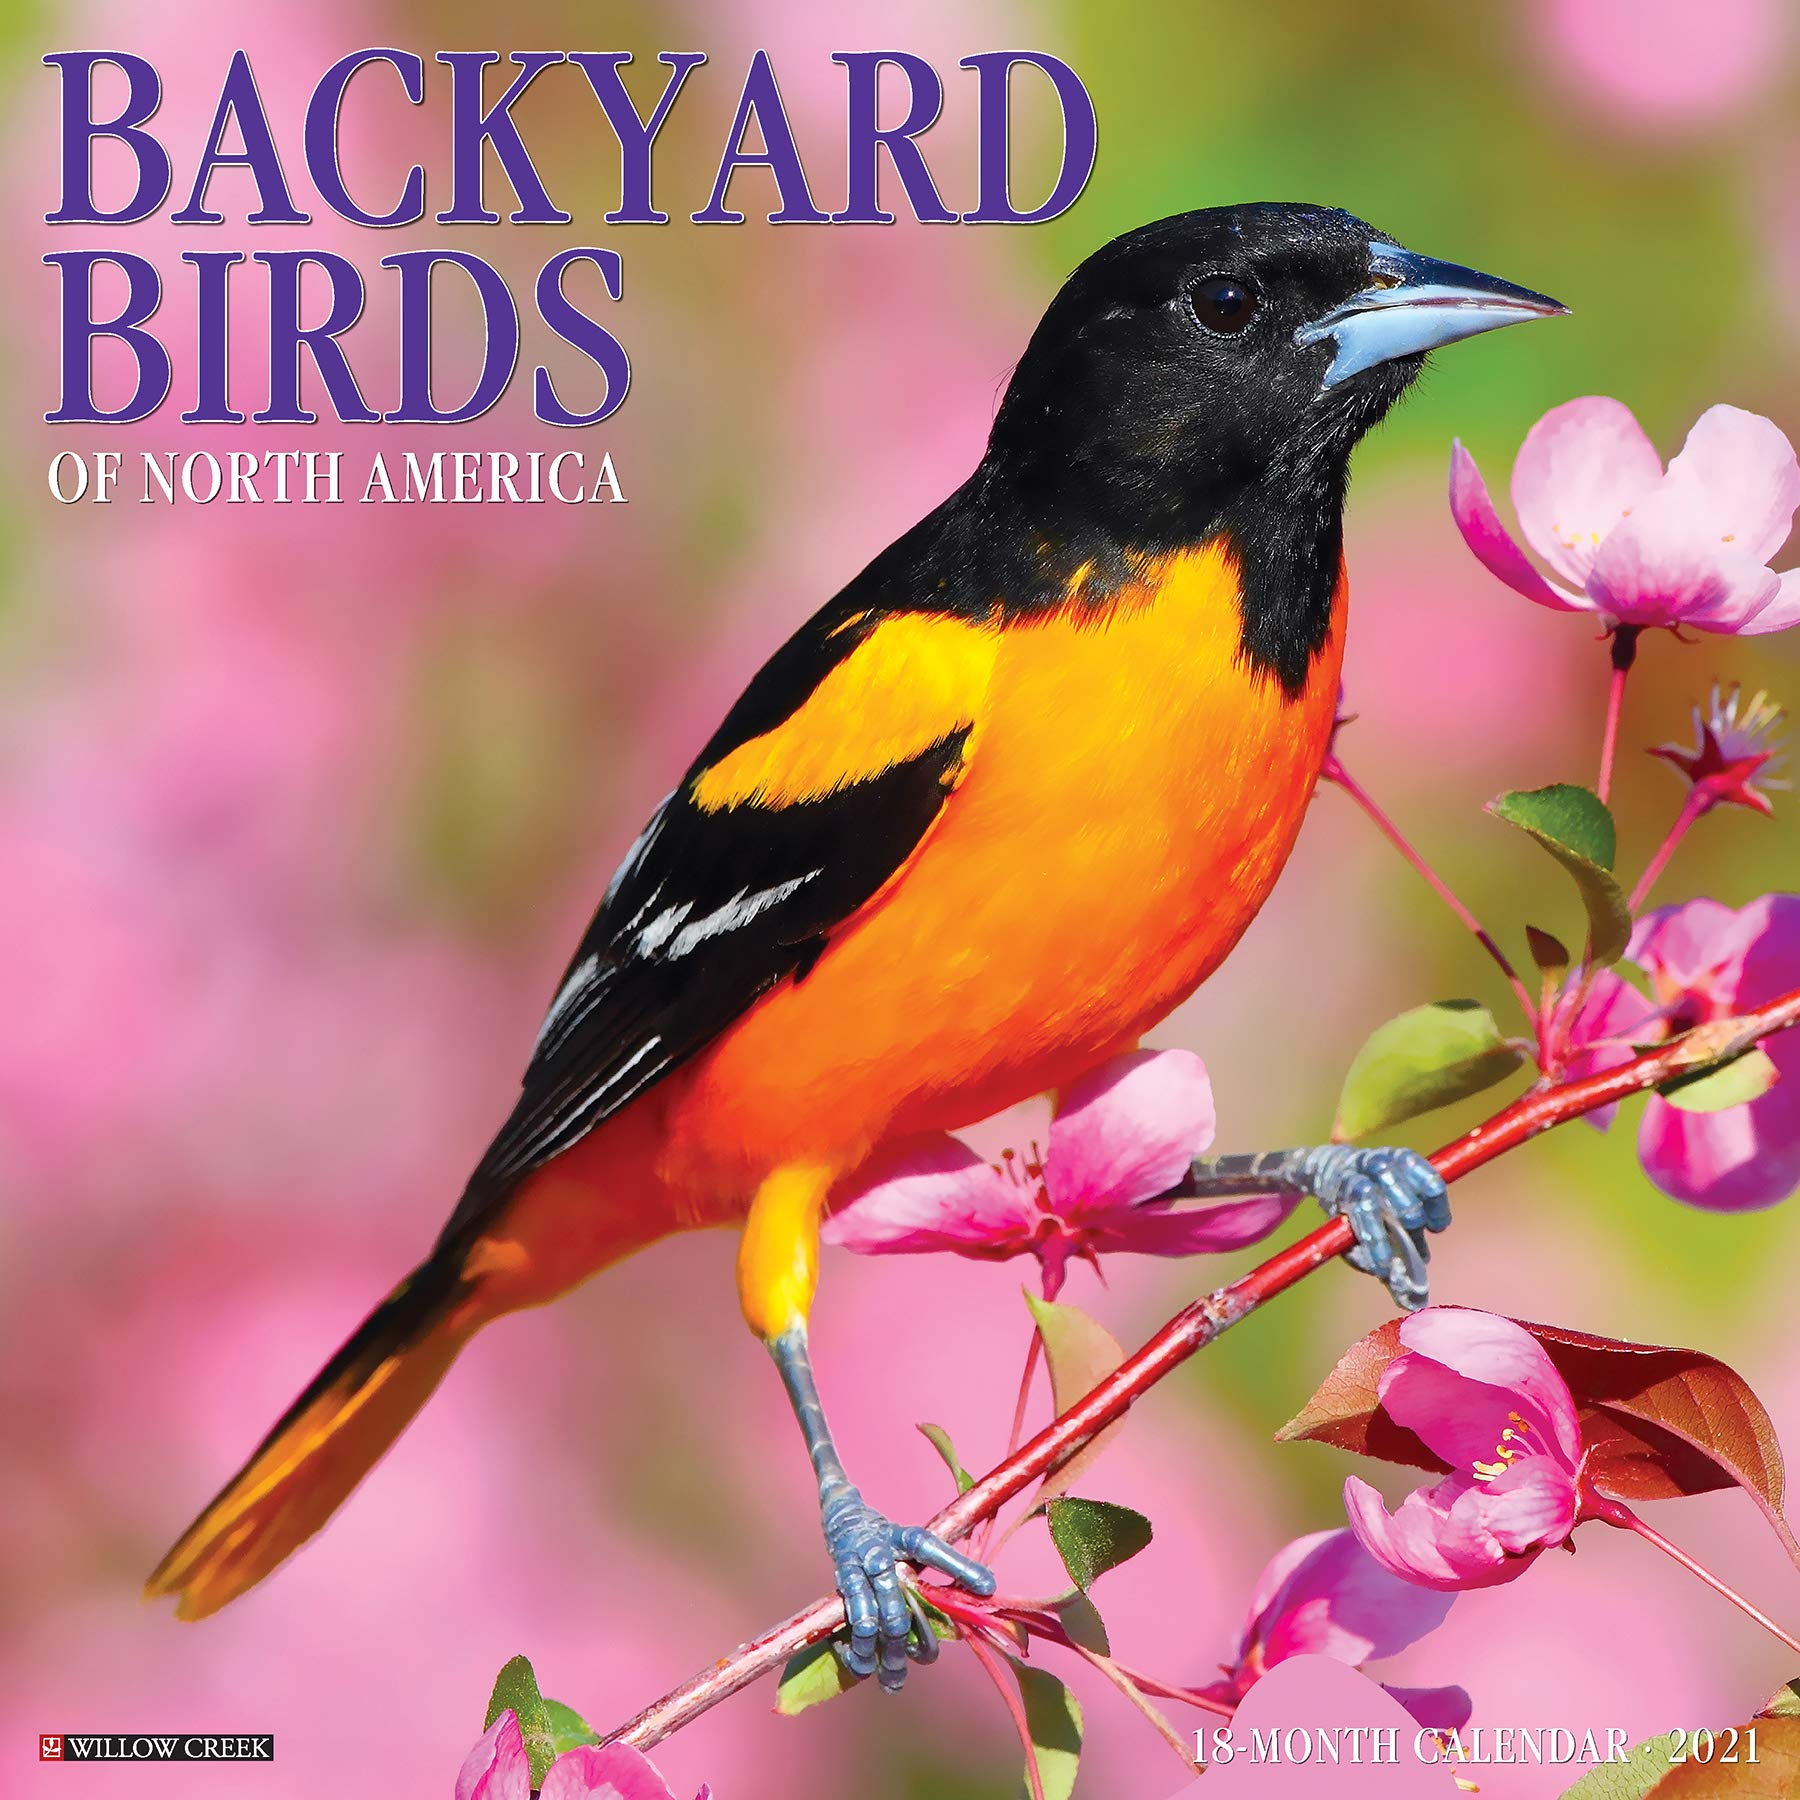 Backyard Birds 2021 Wall Calendar: Willow Creek Press